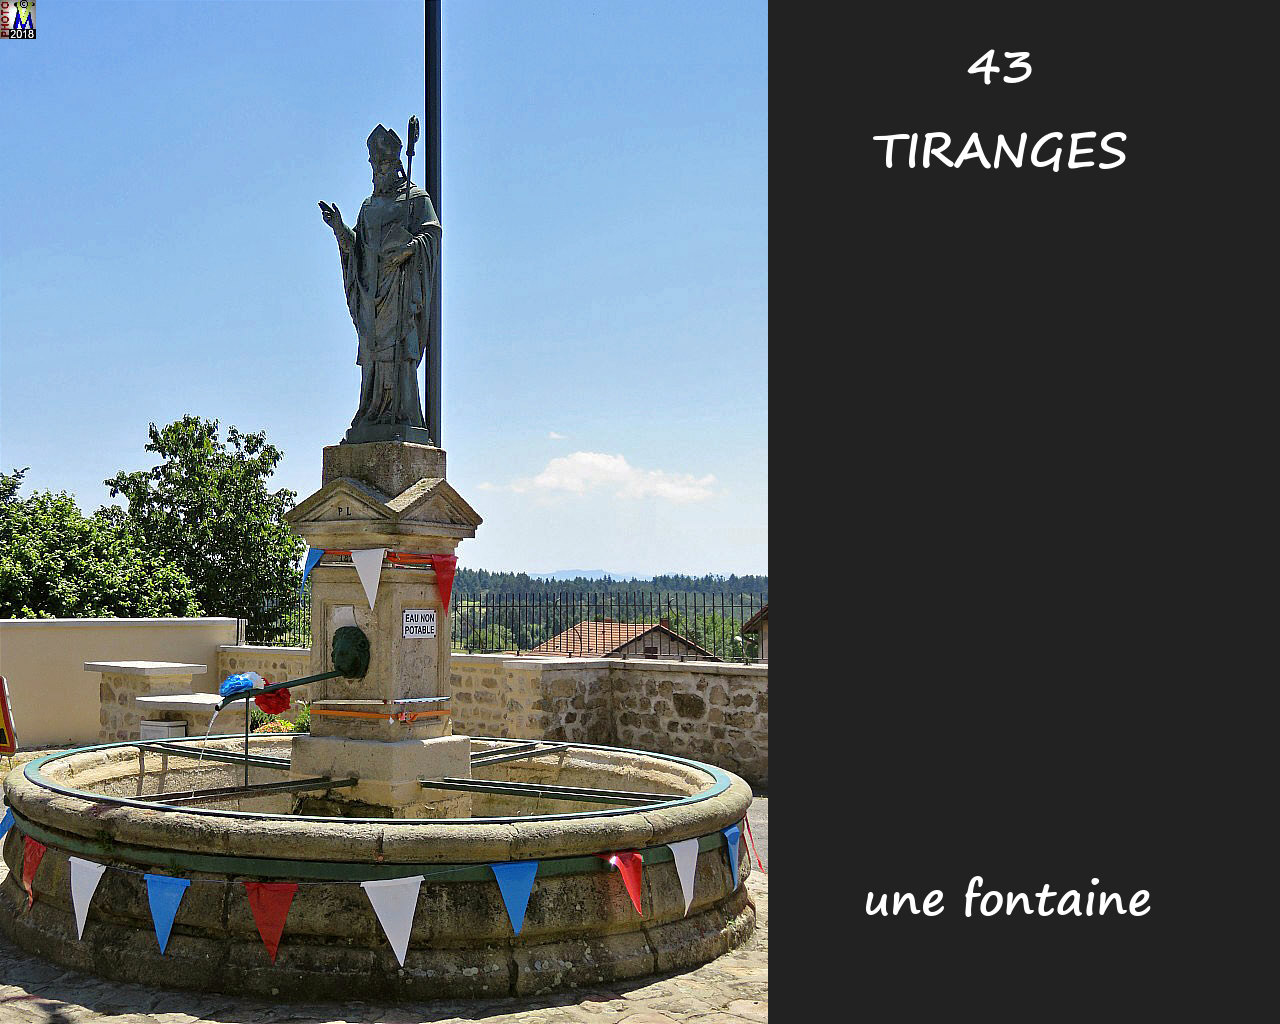 43TIRANGES_fontaine_100.jpg